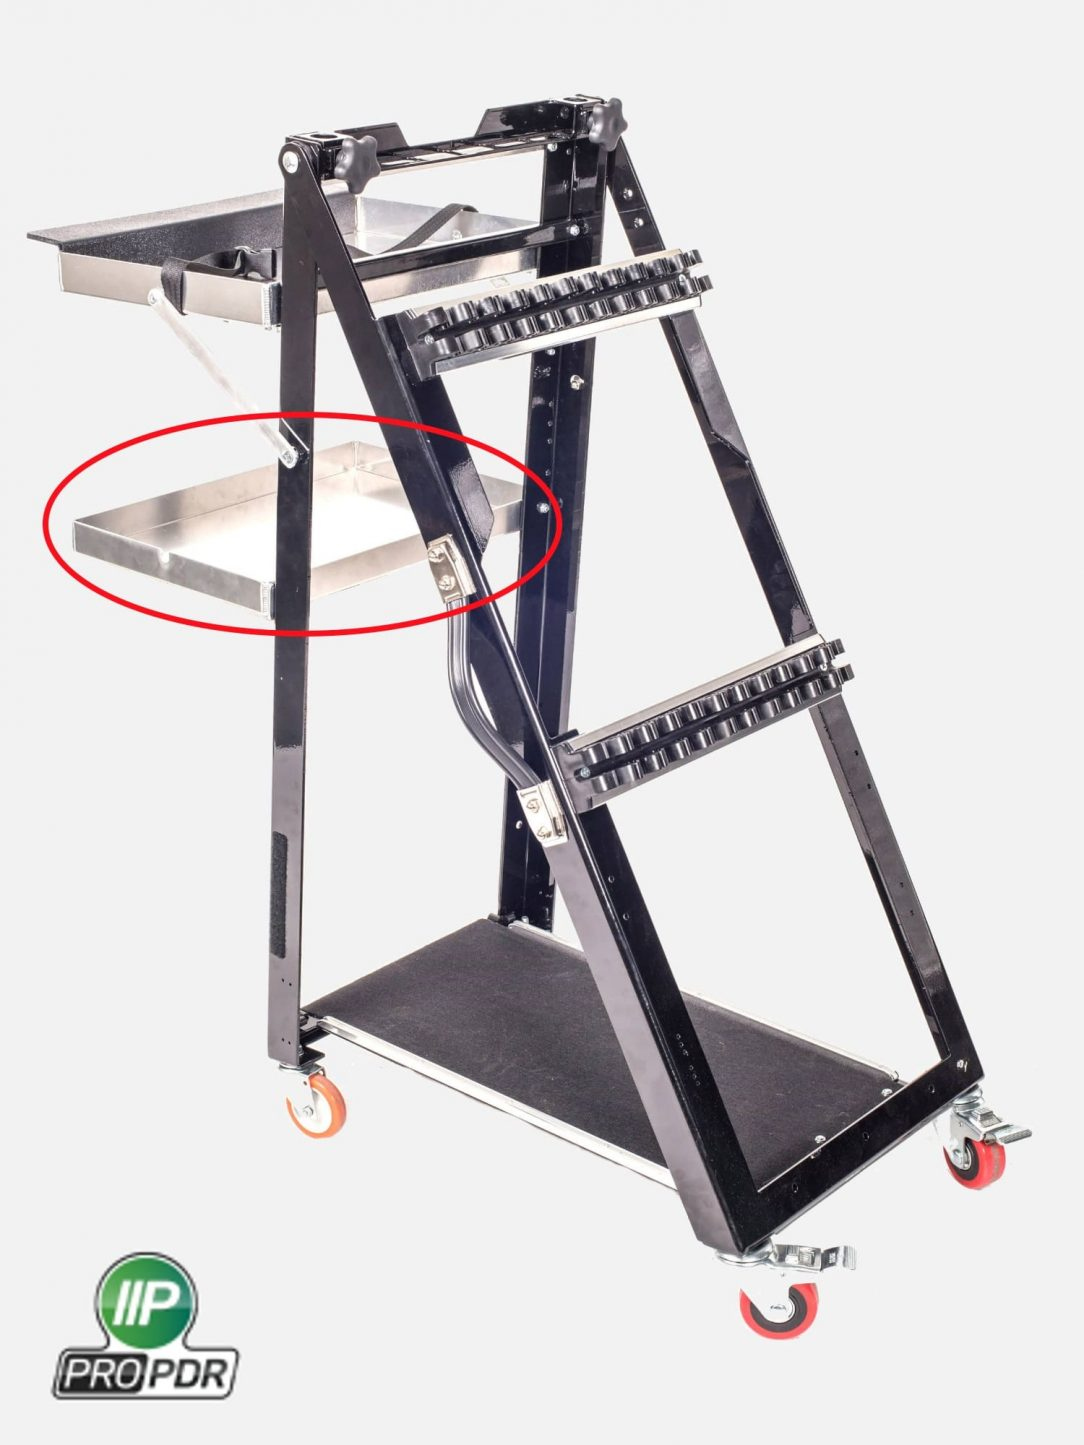 REPLACEMENT LOWER TRAY FOR A-FRAME TOOLCART - ProPDR